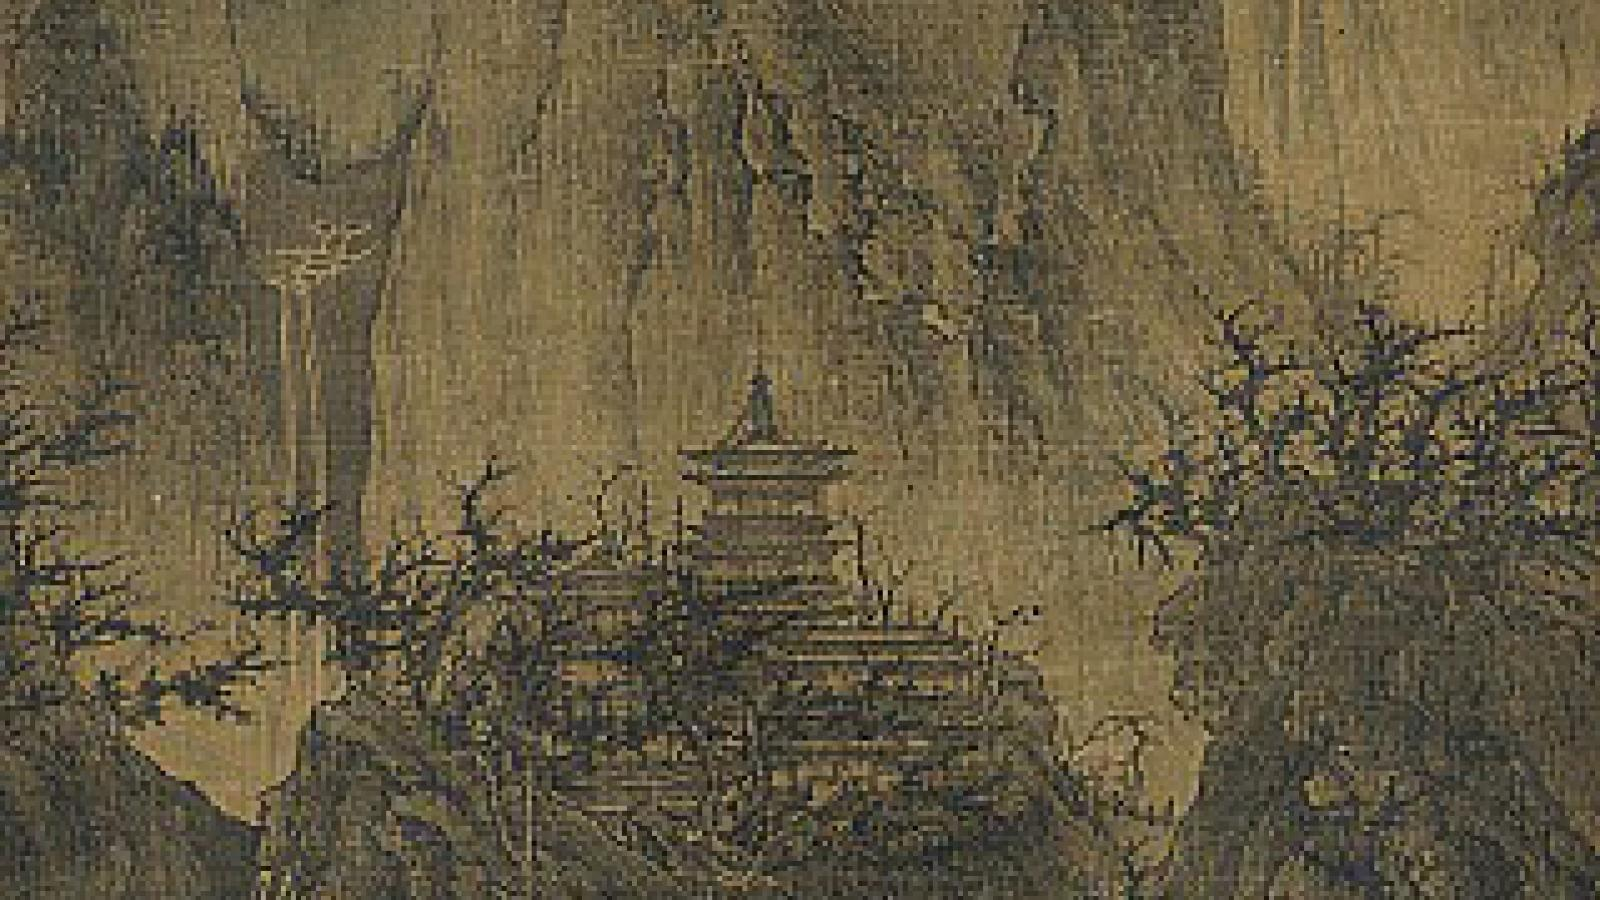 Li Cheng; A Solitary Temple Amid Clearing Peaks